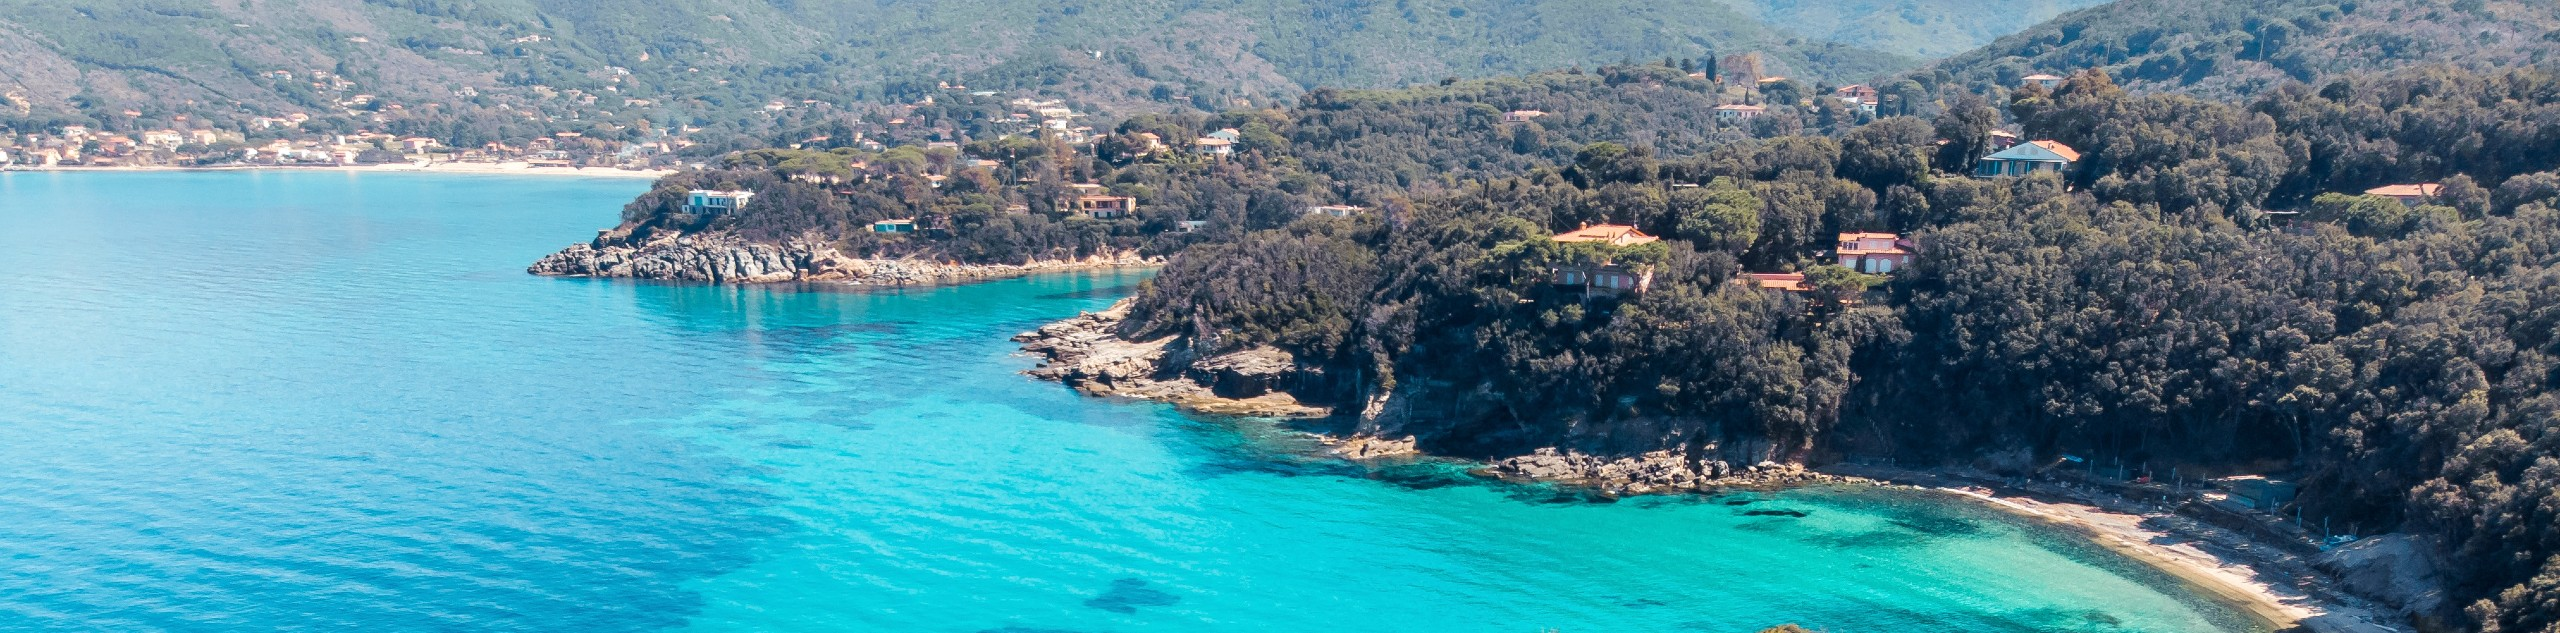 Turquoise colors along the Elba Island shores